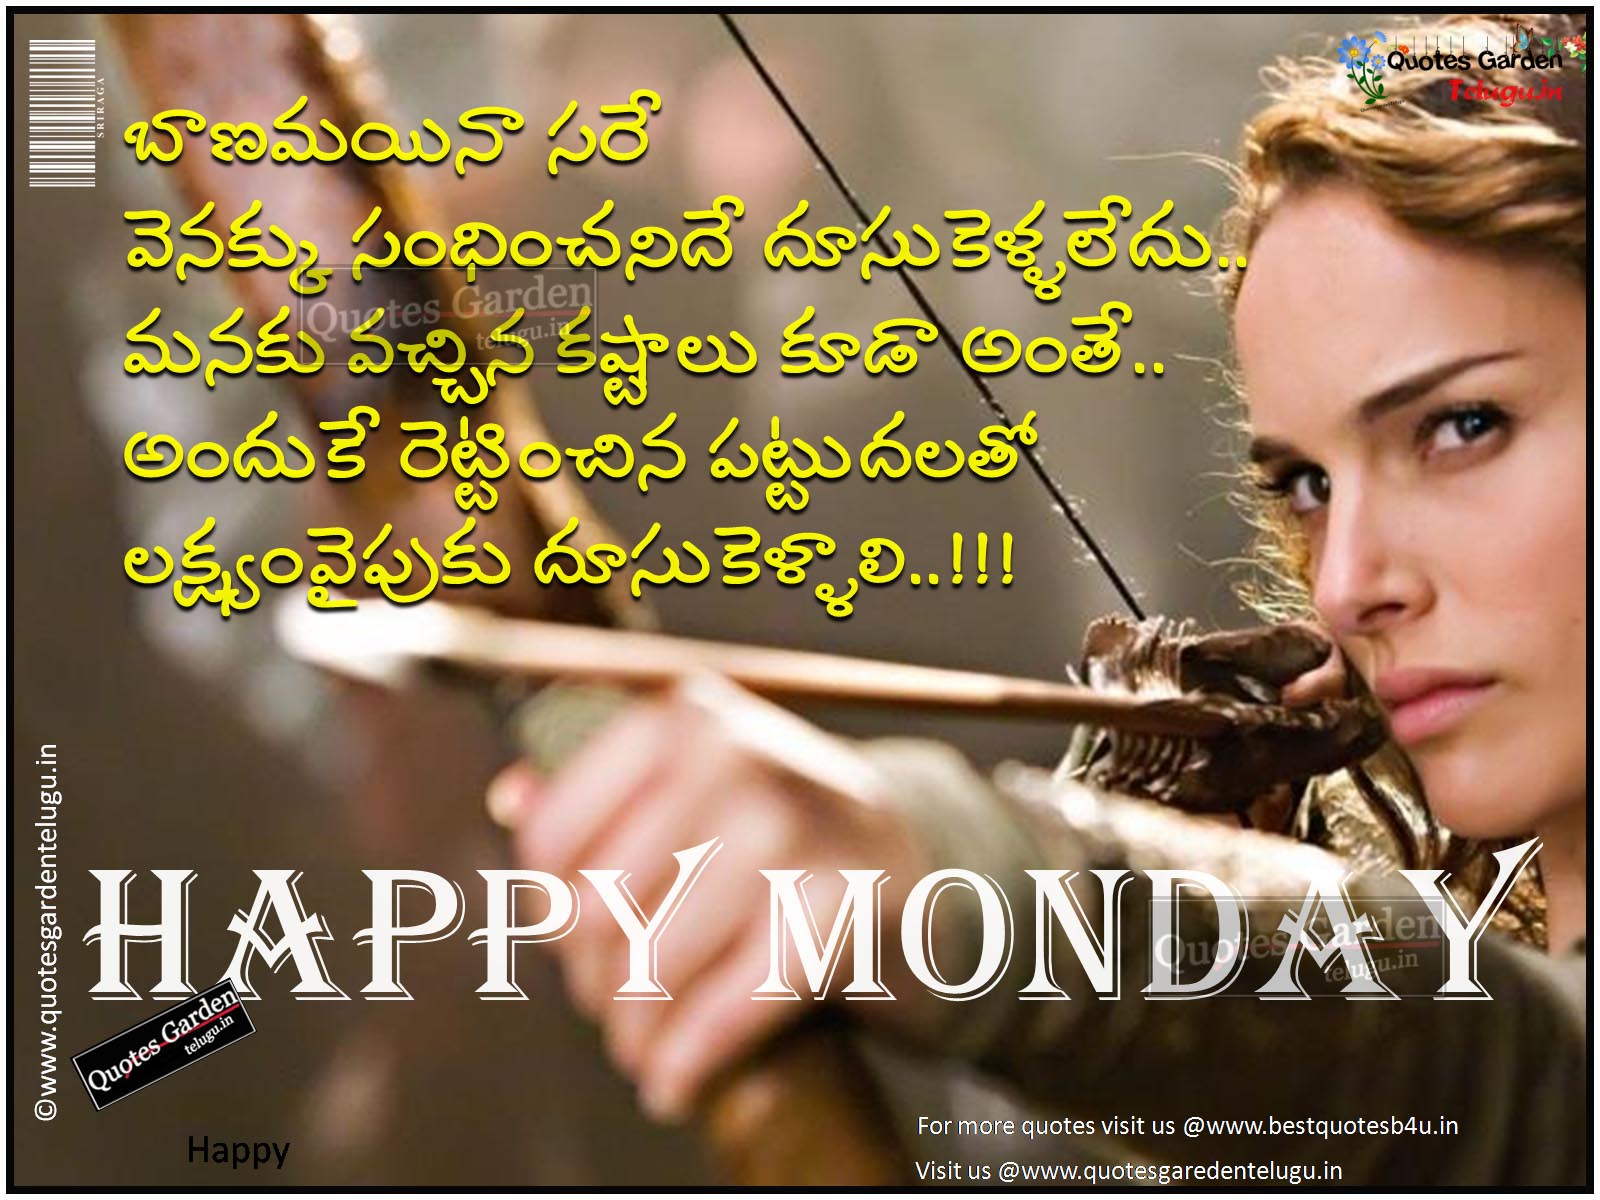 Happy Monday Inspirational Telugu Good Morning Quotations Quotes